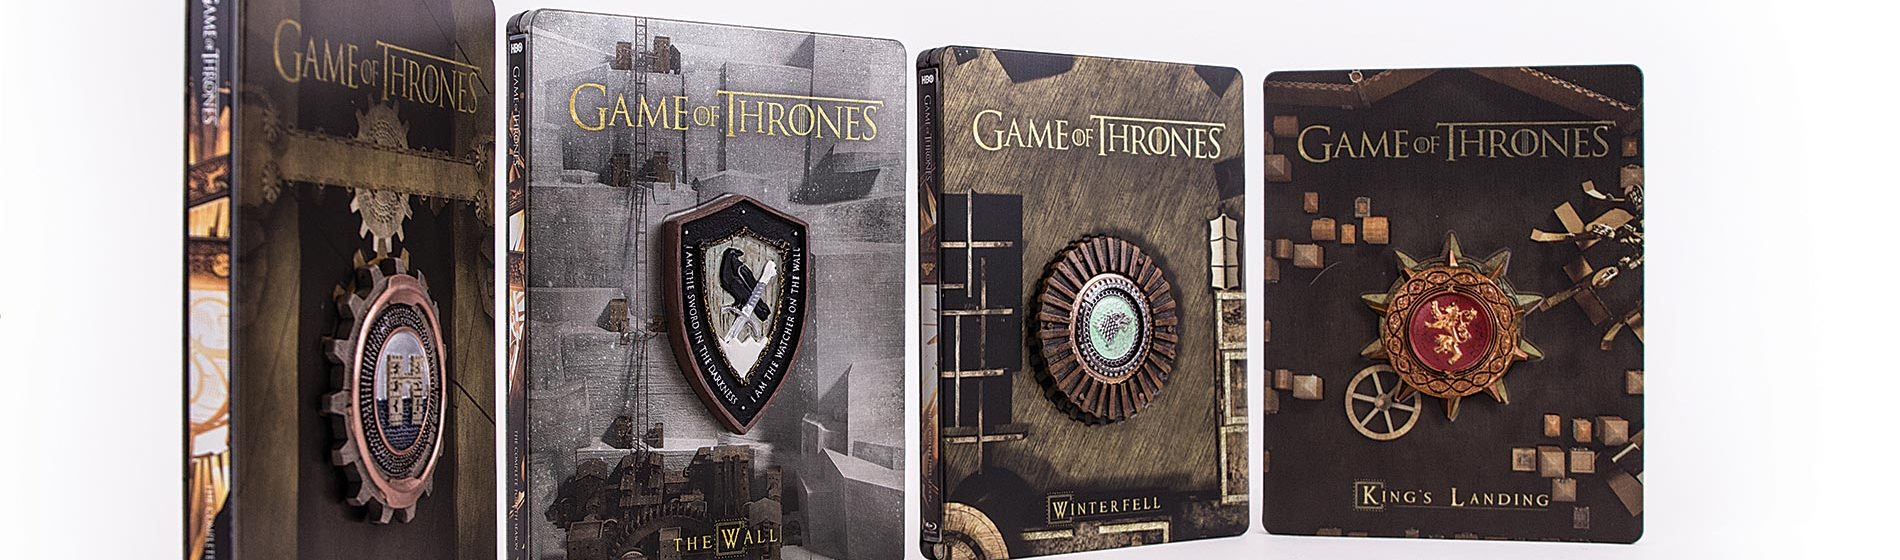 Game of Thrones Steelbook Contest